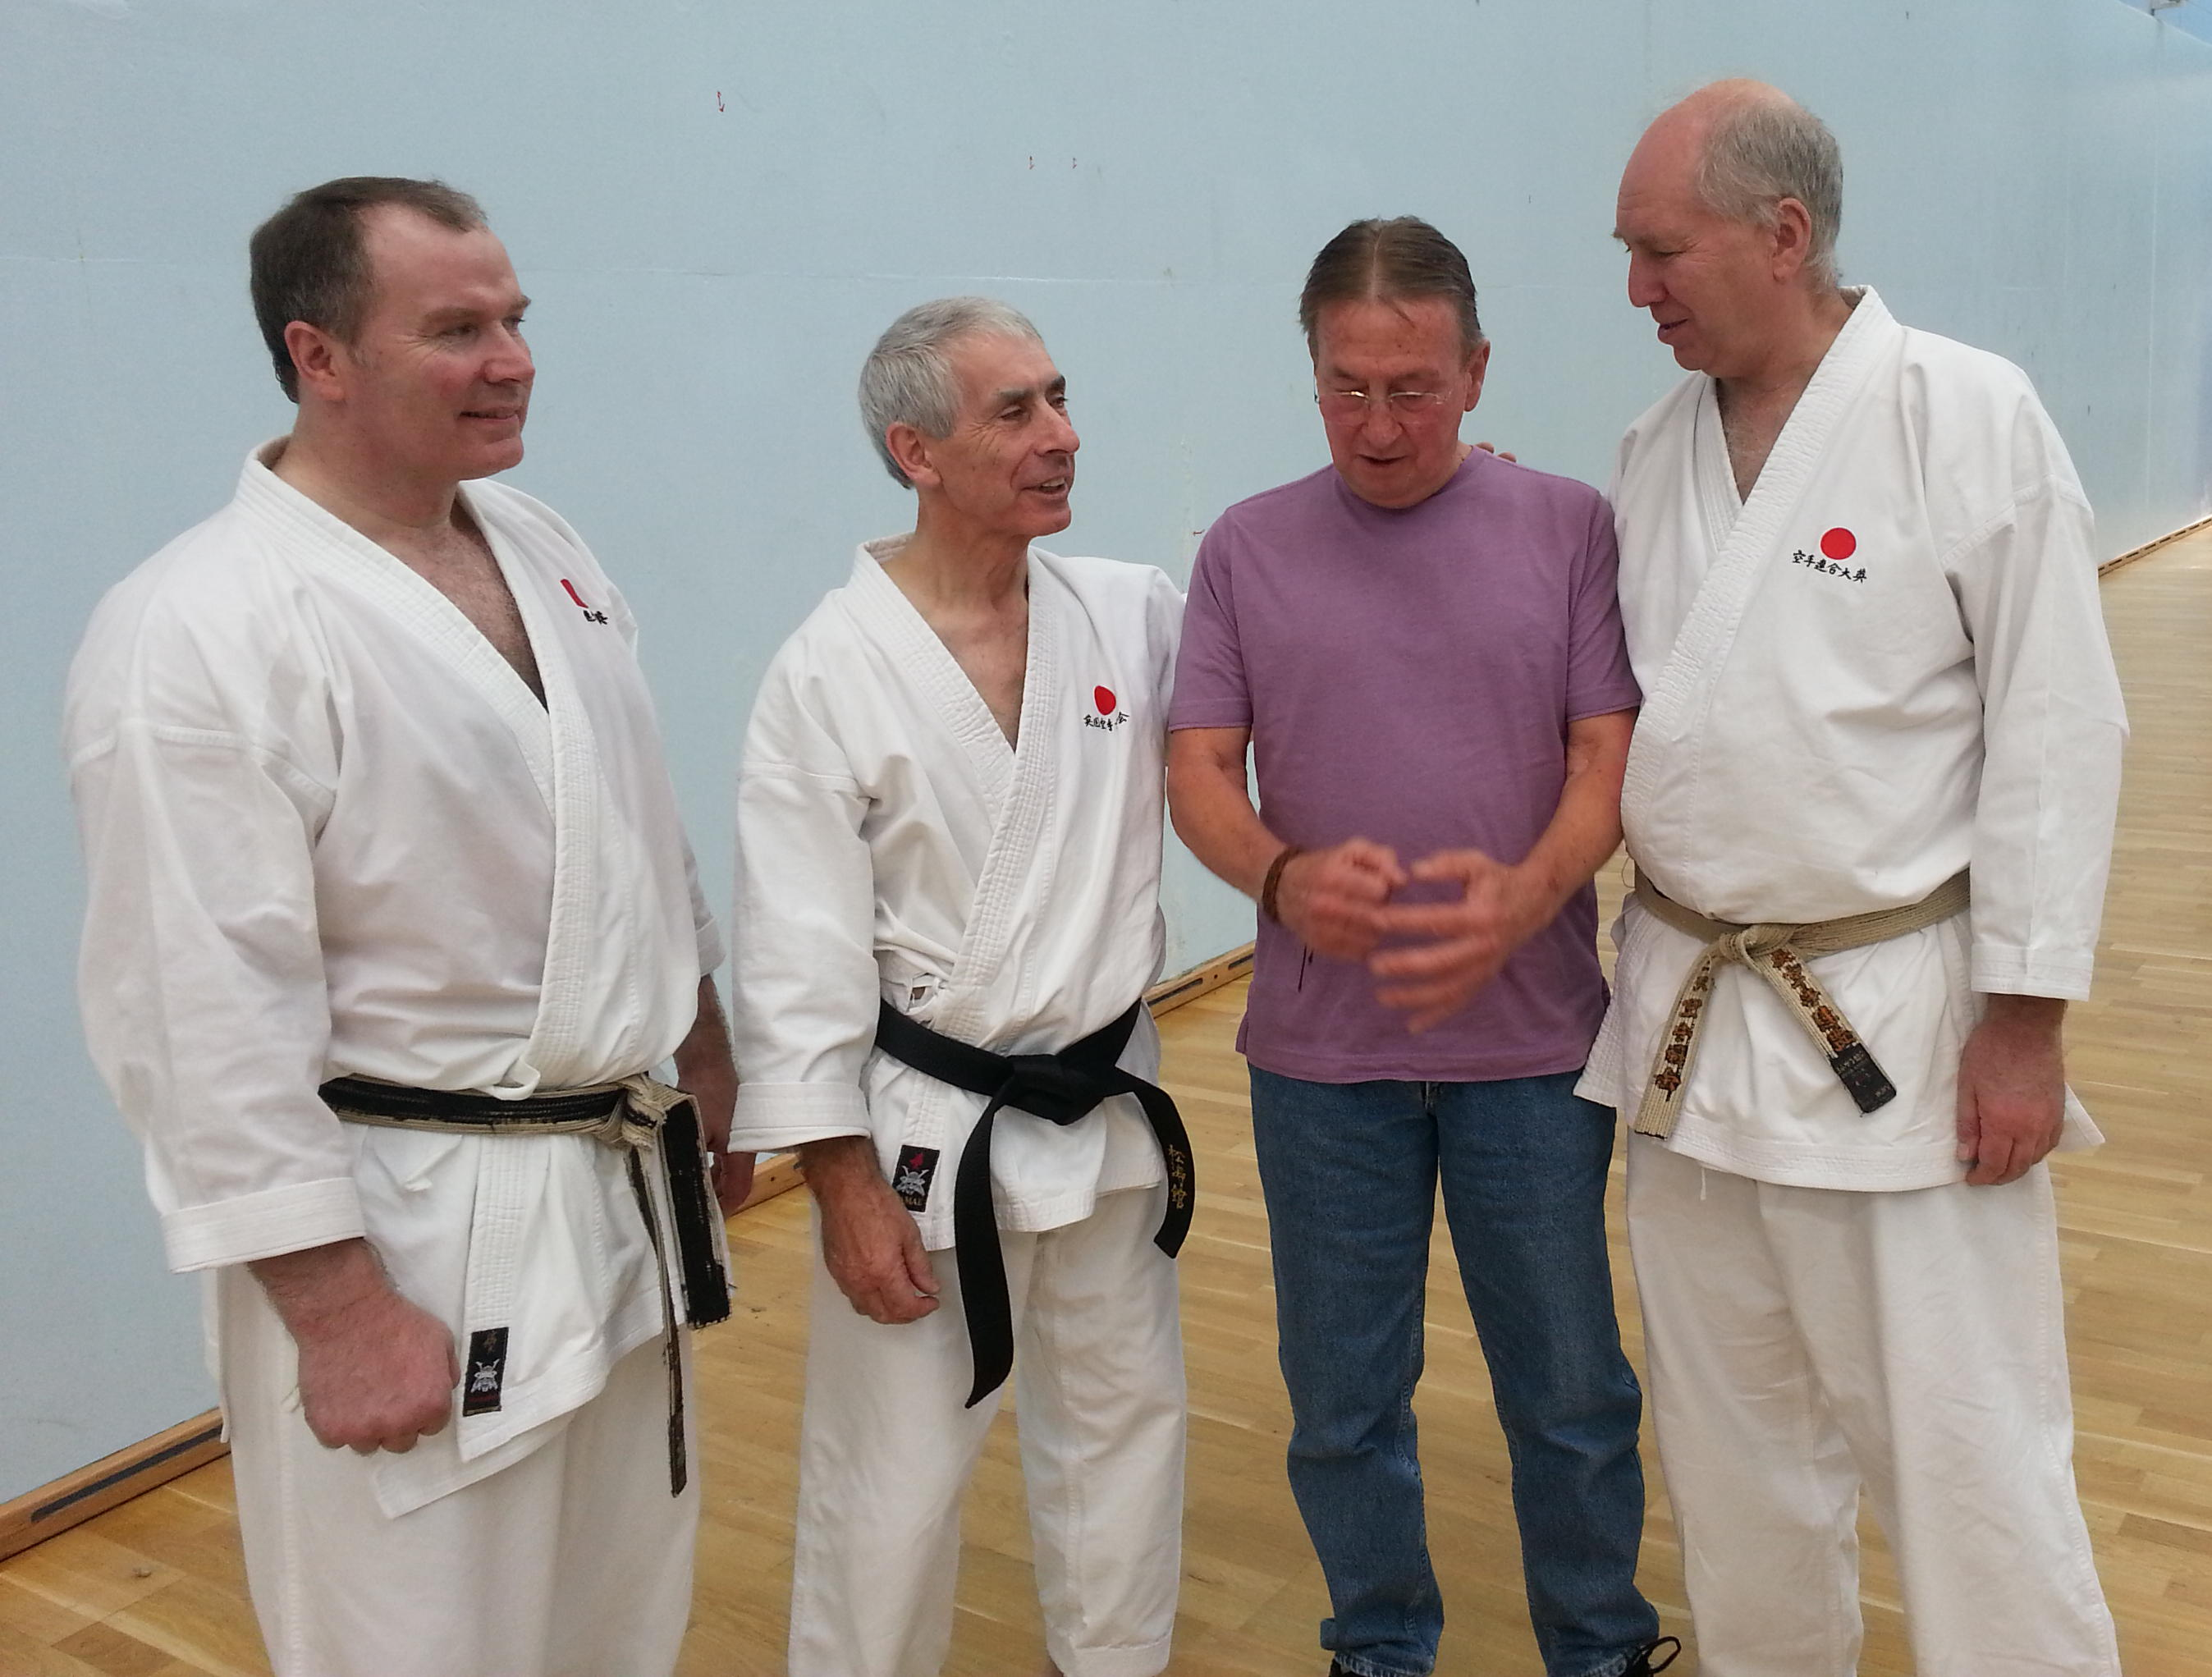 Ed with Frank Breenan, Andy Sherry and Bob Poynton